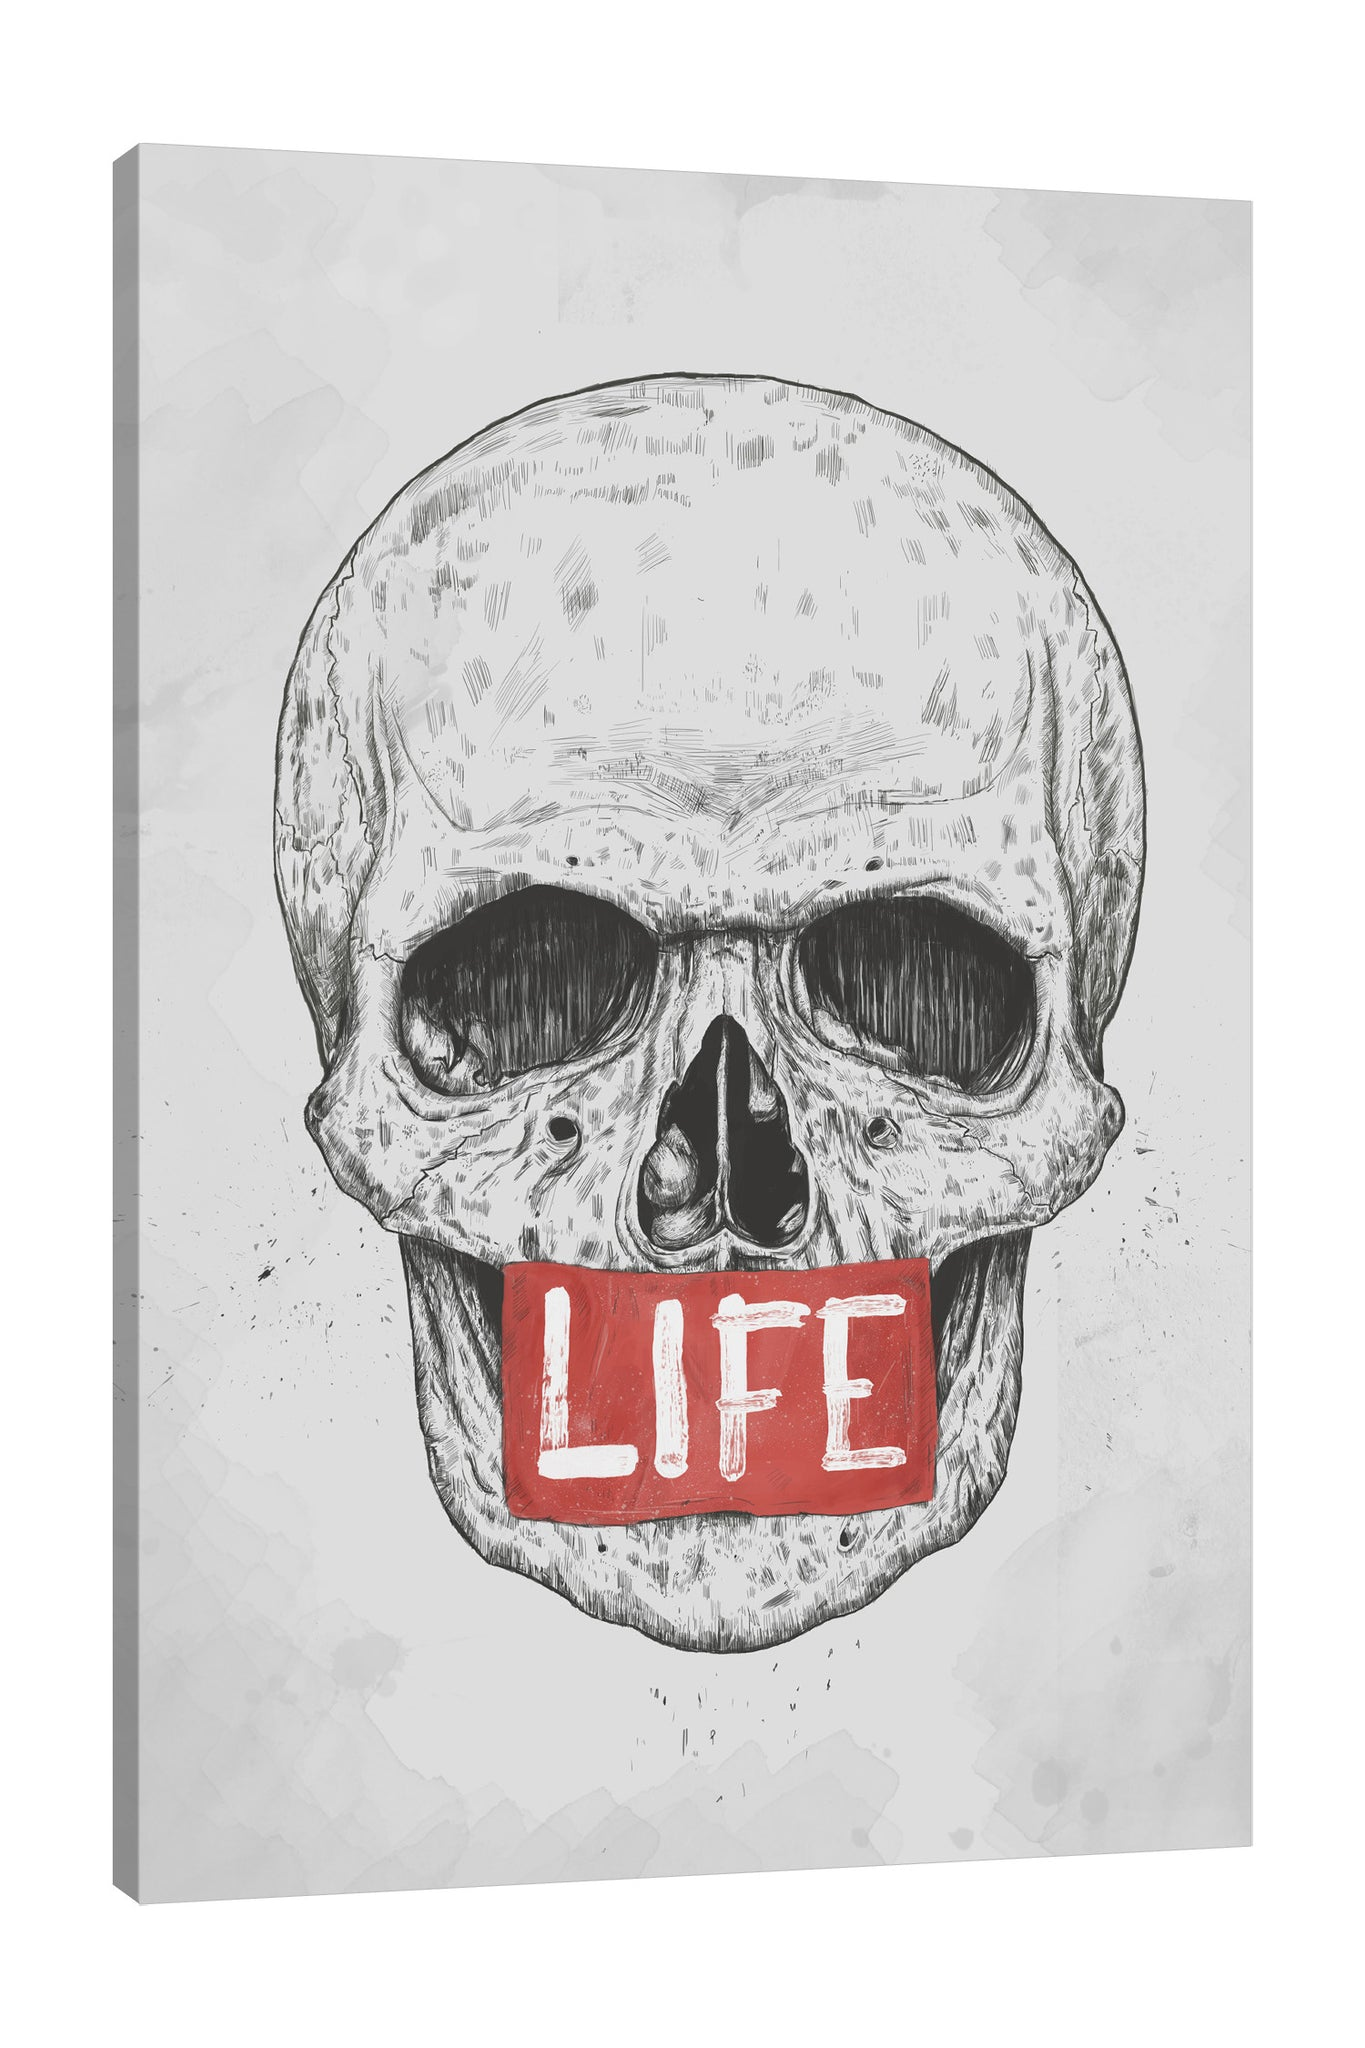 Balazs-Solti,Modern & Contemporary,People,skull,skulls,bones,bone,life,words,lines,line,red,black and white,Purple,White,Gray